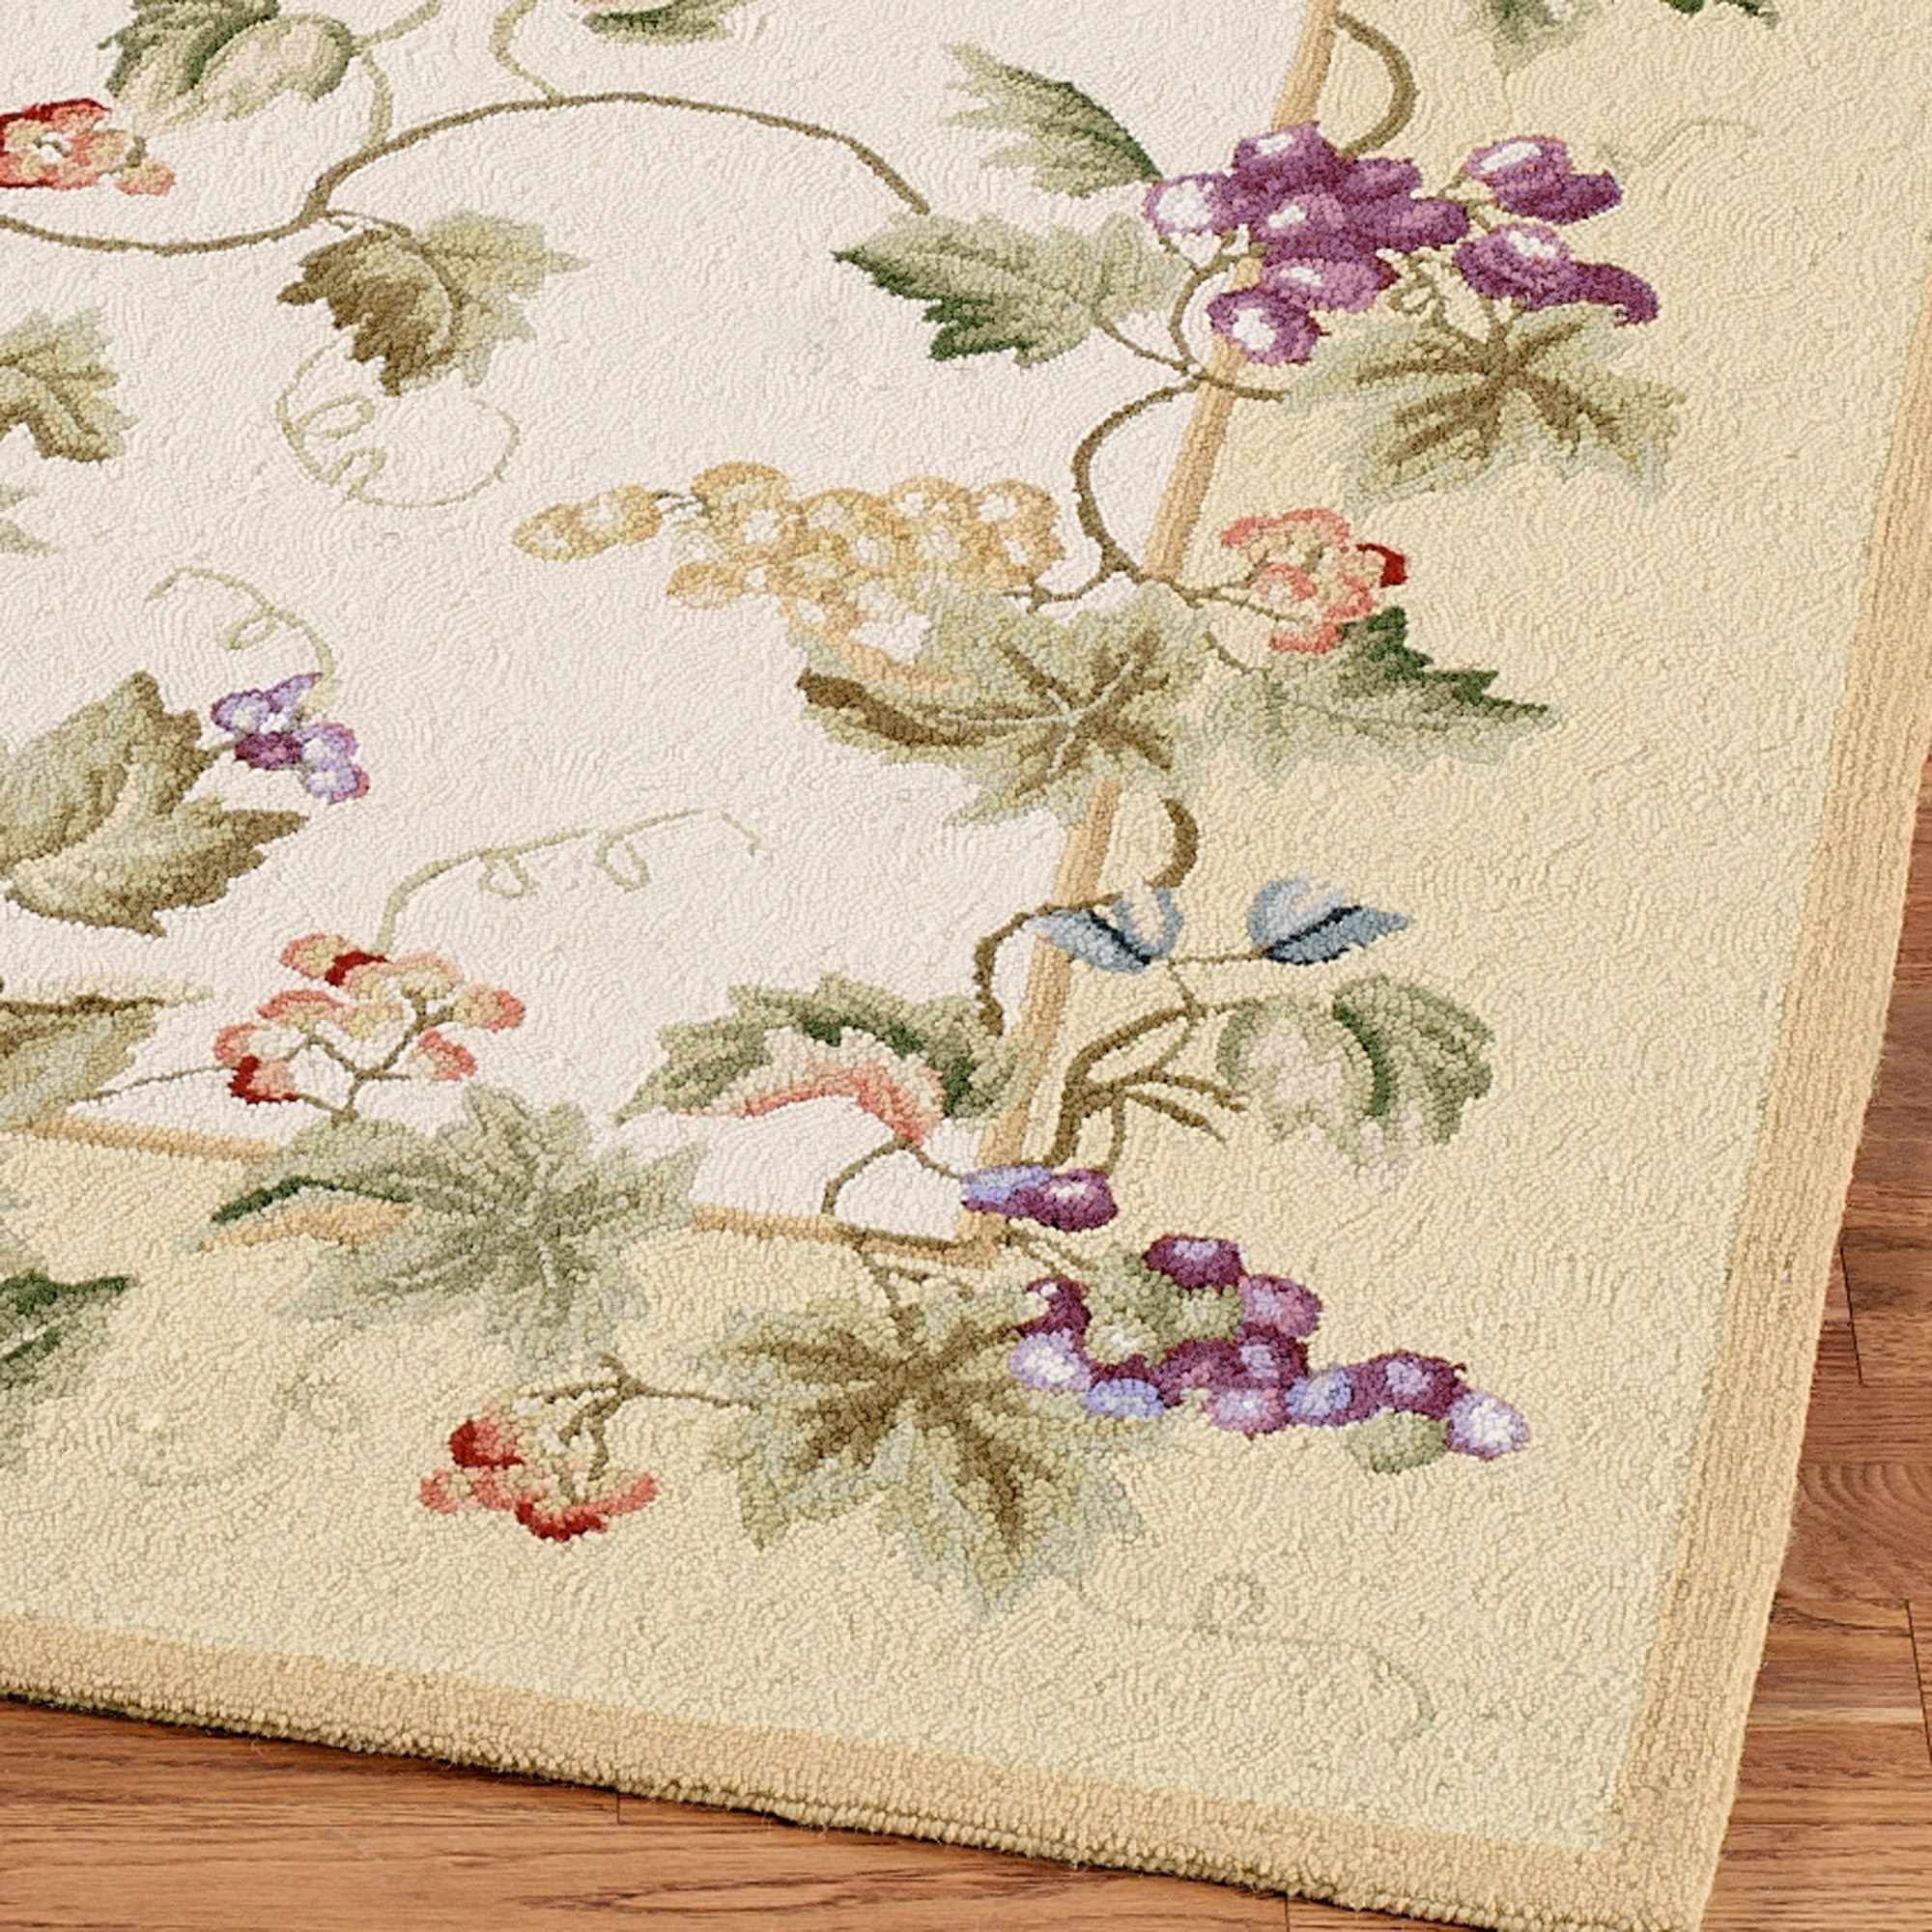 Area Rugs With Grapevines Www Topsimages Com